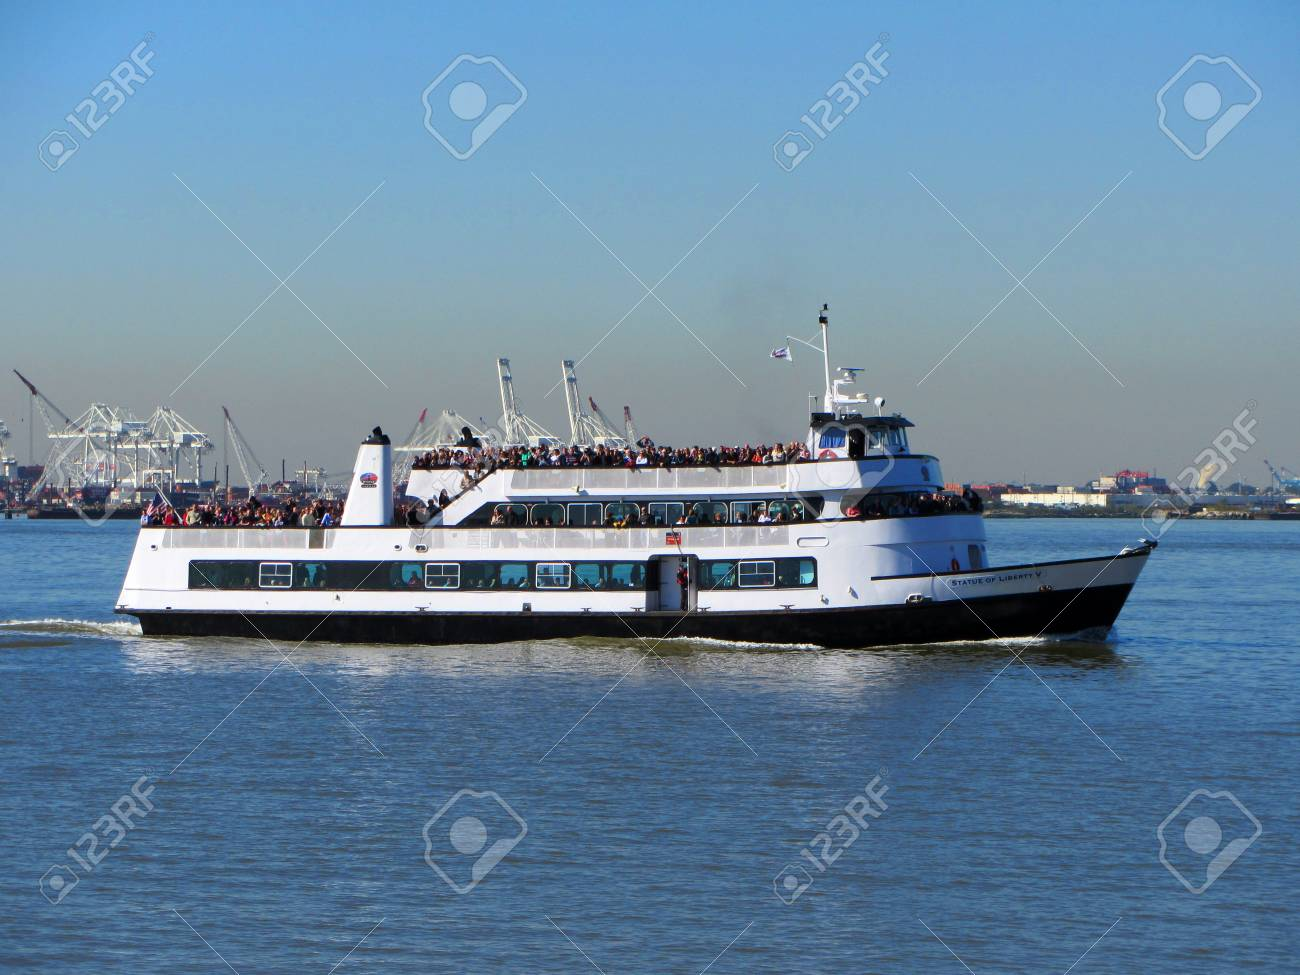 tourists aboard the statue of liberty ferry stock photo, picture and